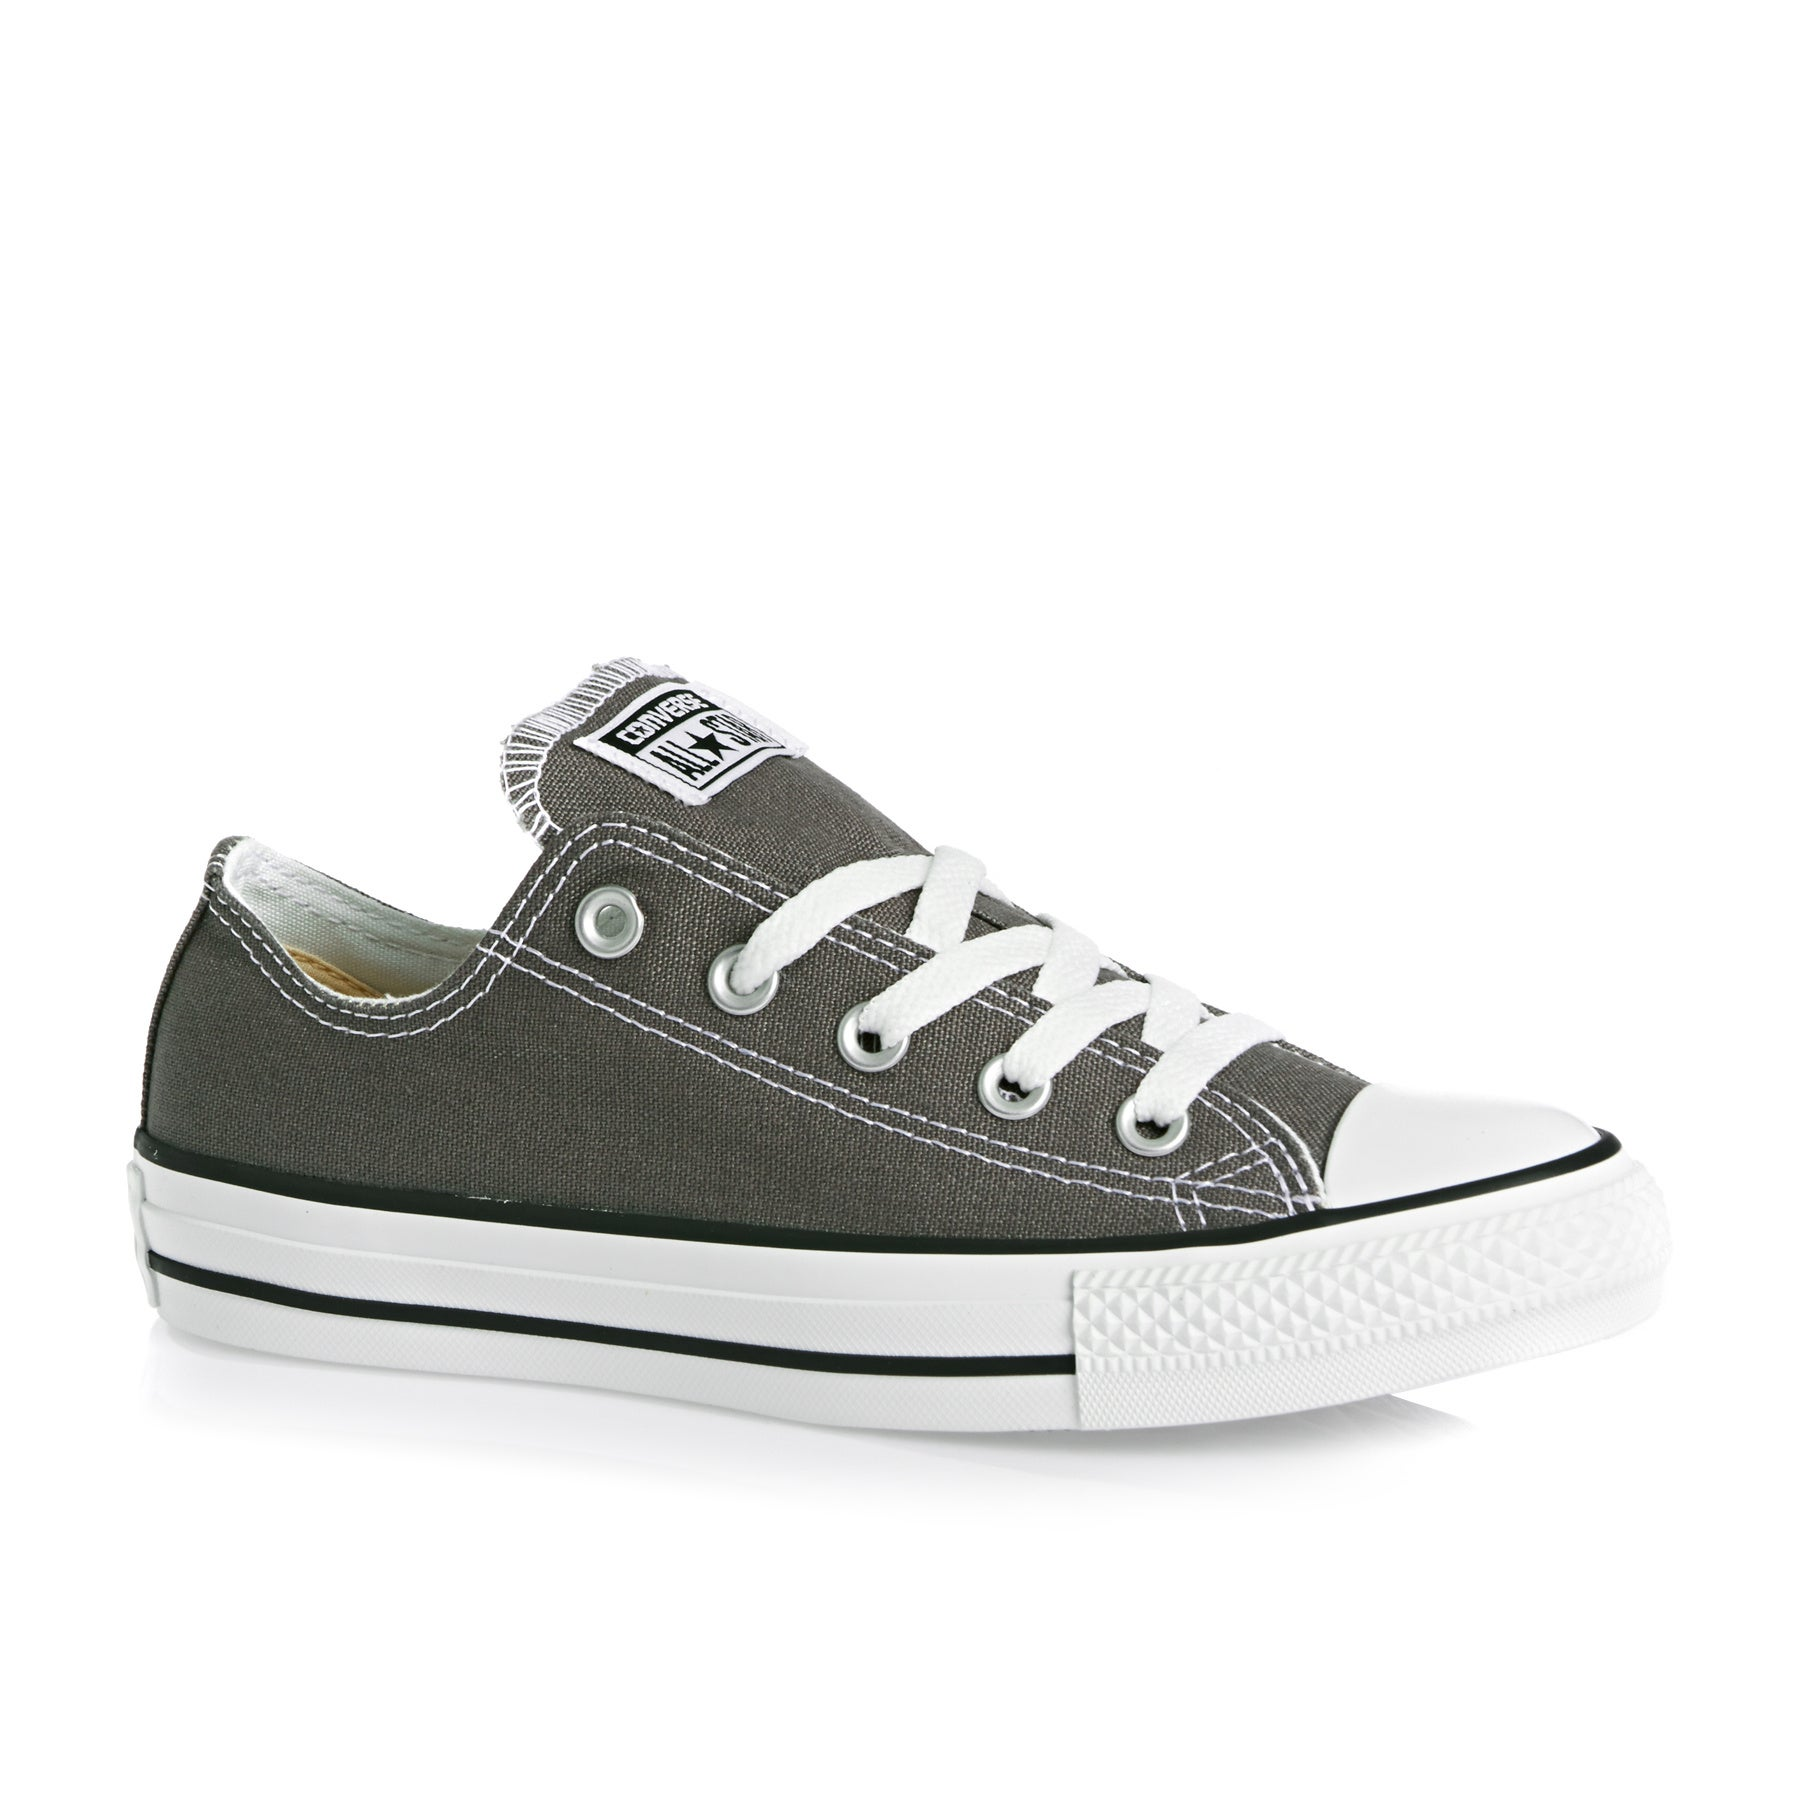 Converse Chuck Taylor All Stars OX Shoes - Charcoal